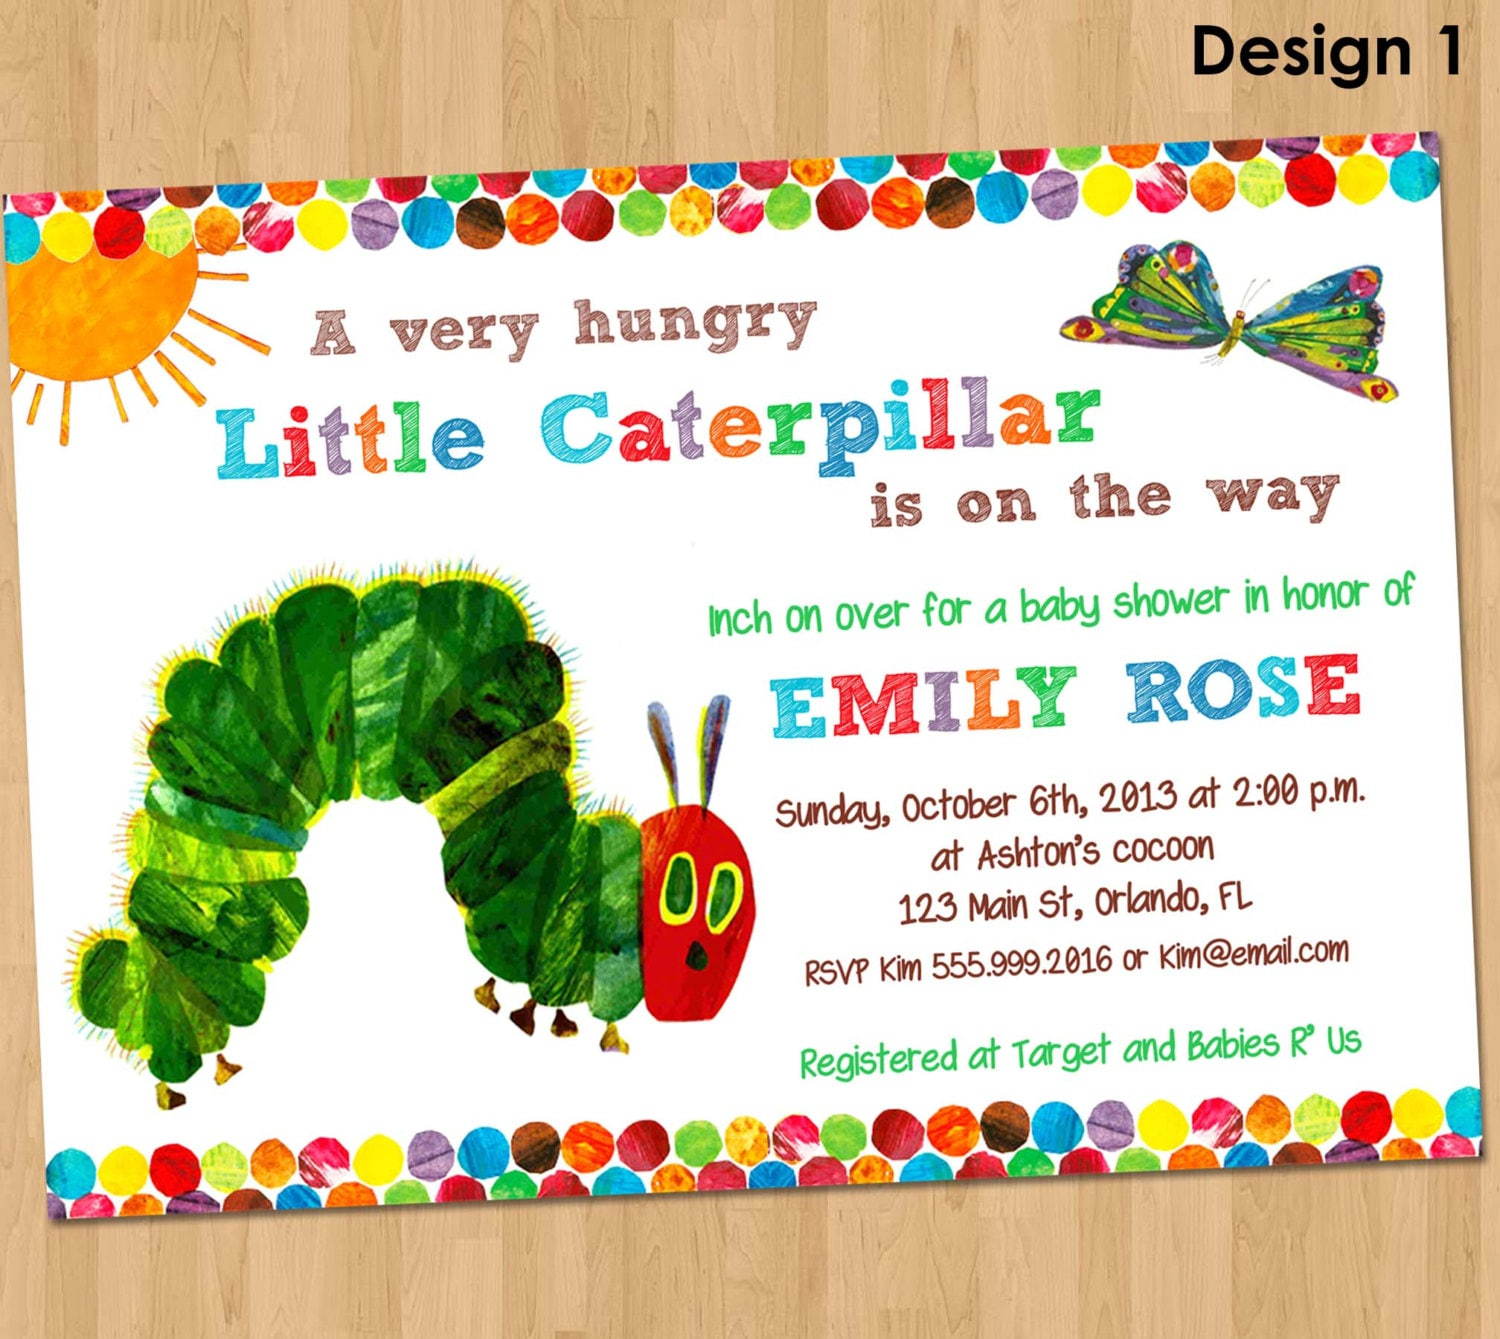 The Very Hungry Caterpillar Invitations is awesome invitation design